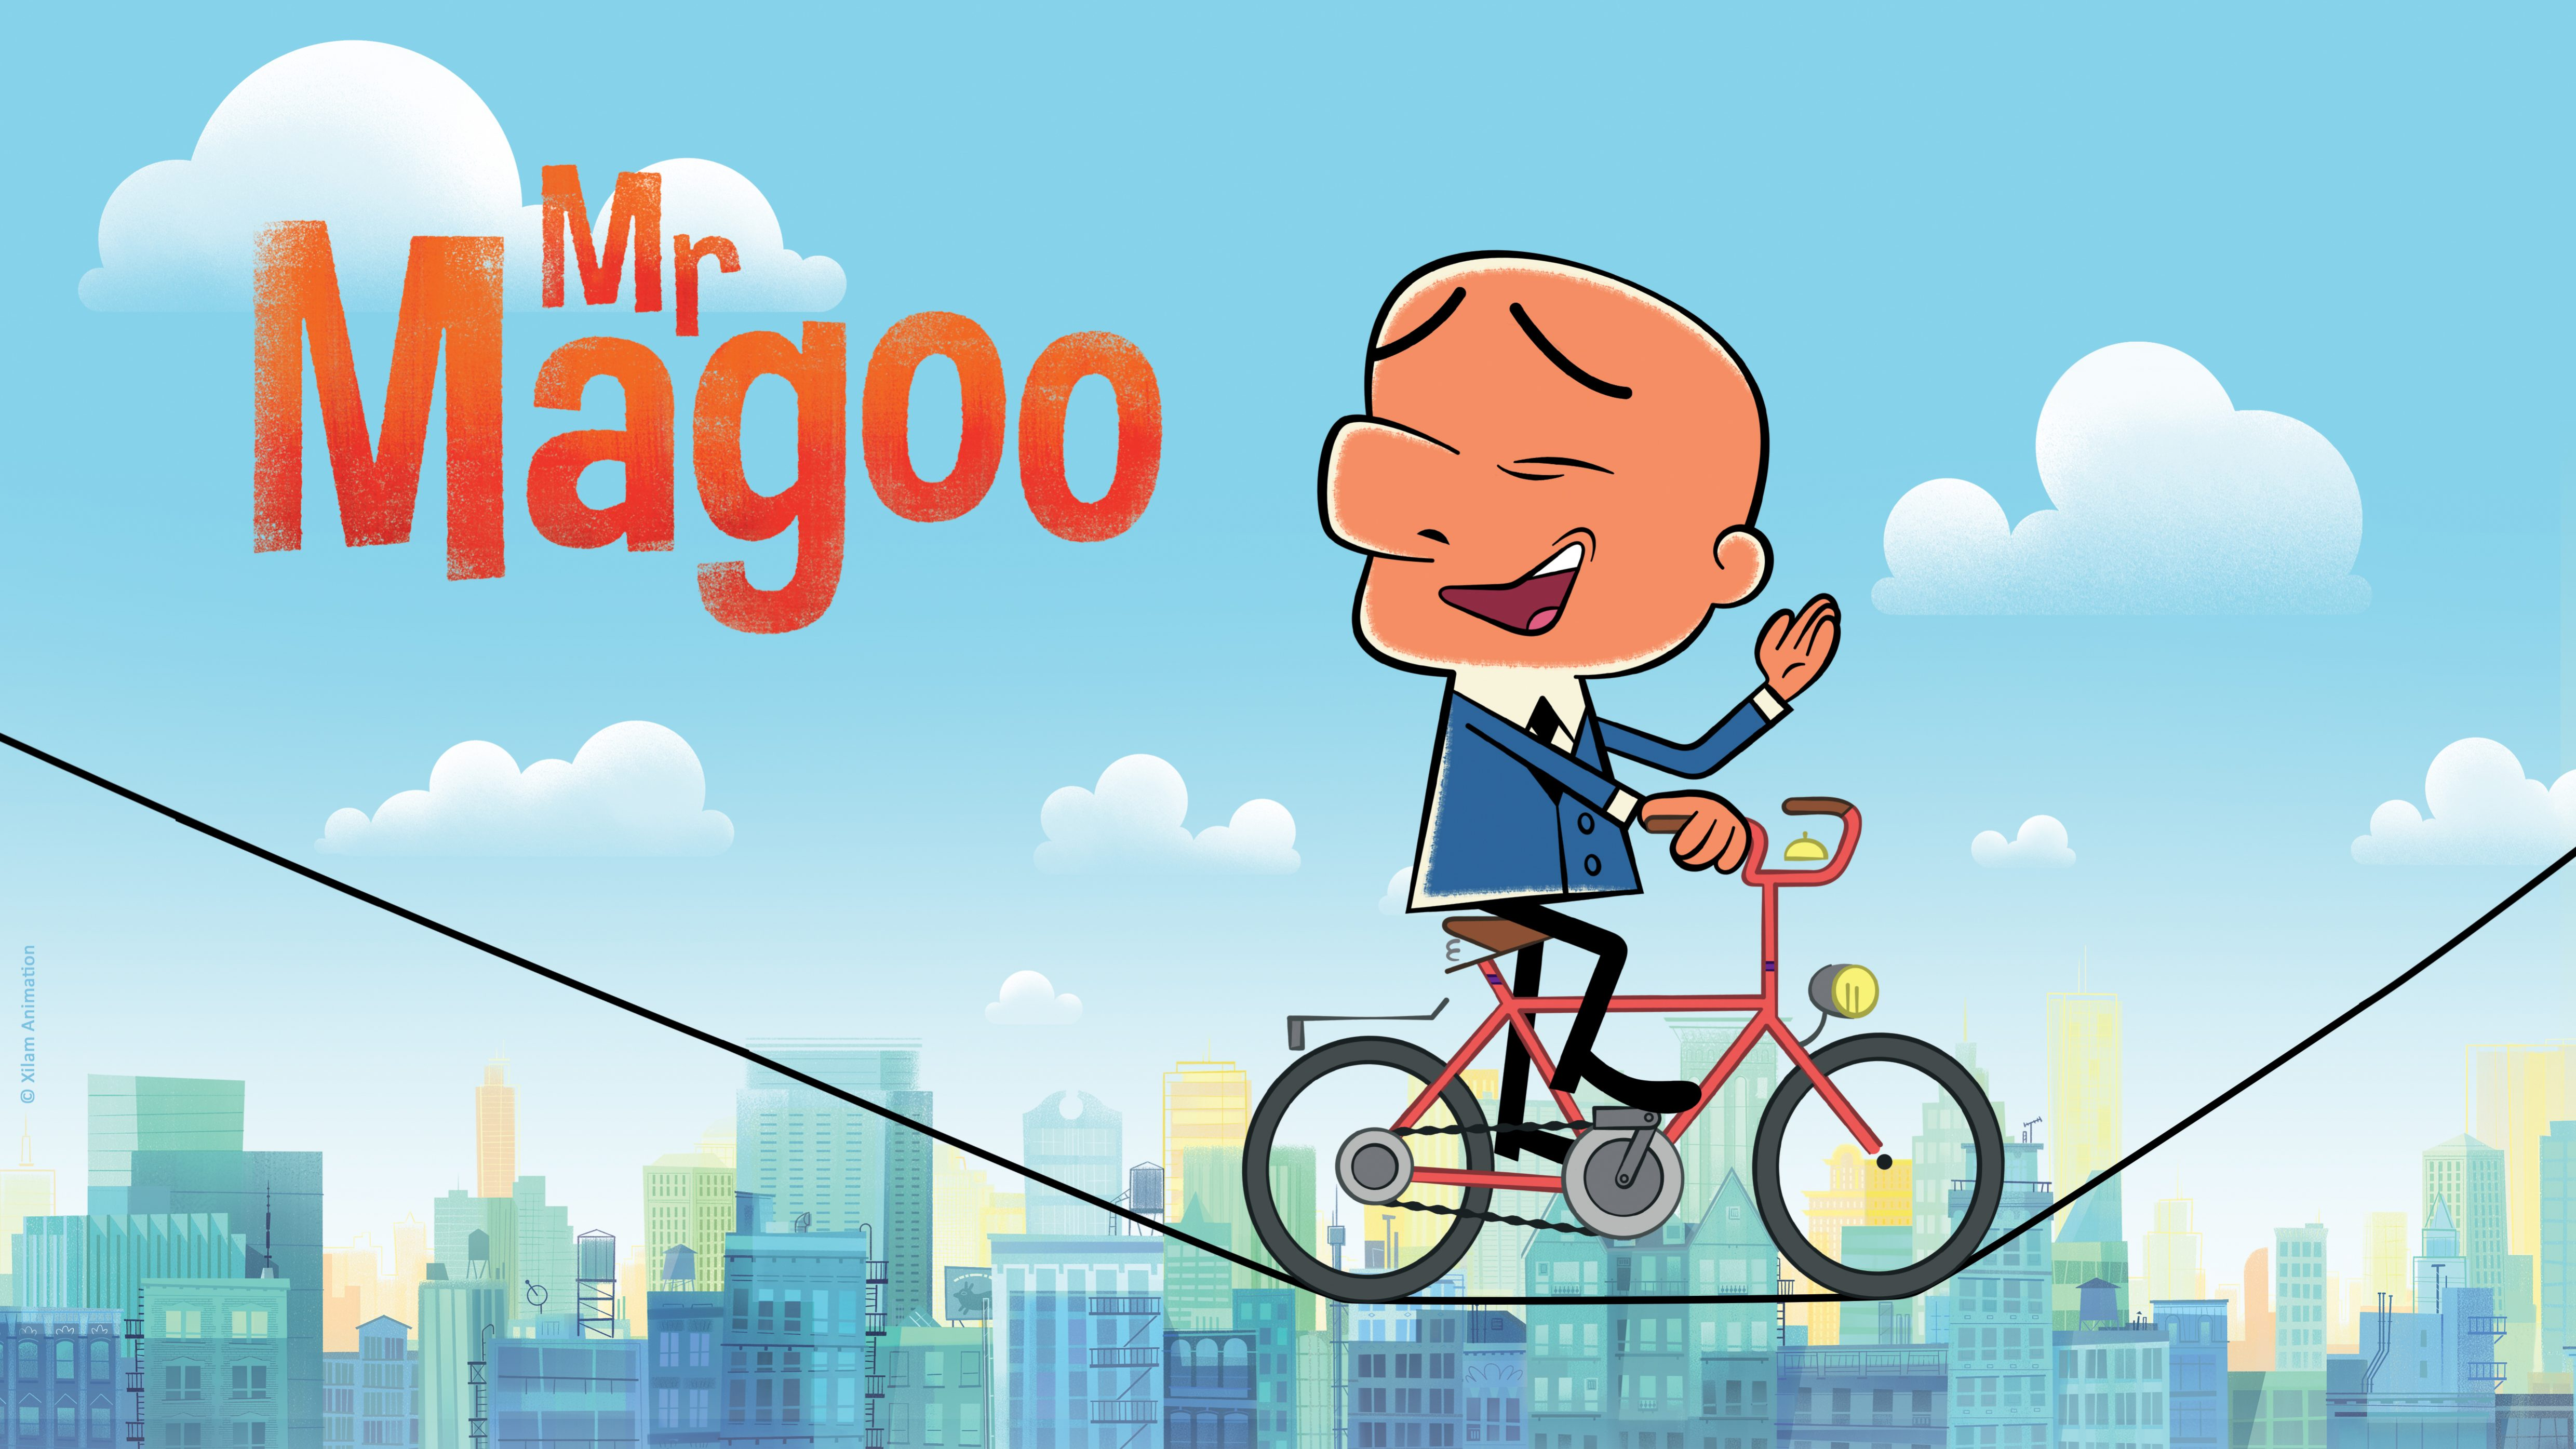 Xilam Animation's Mr Magoo to Break Into the US – Xilam animation